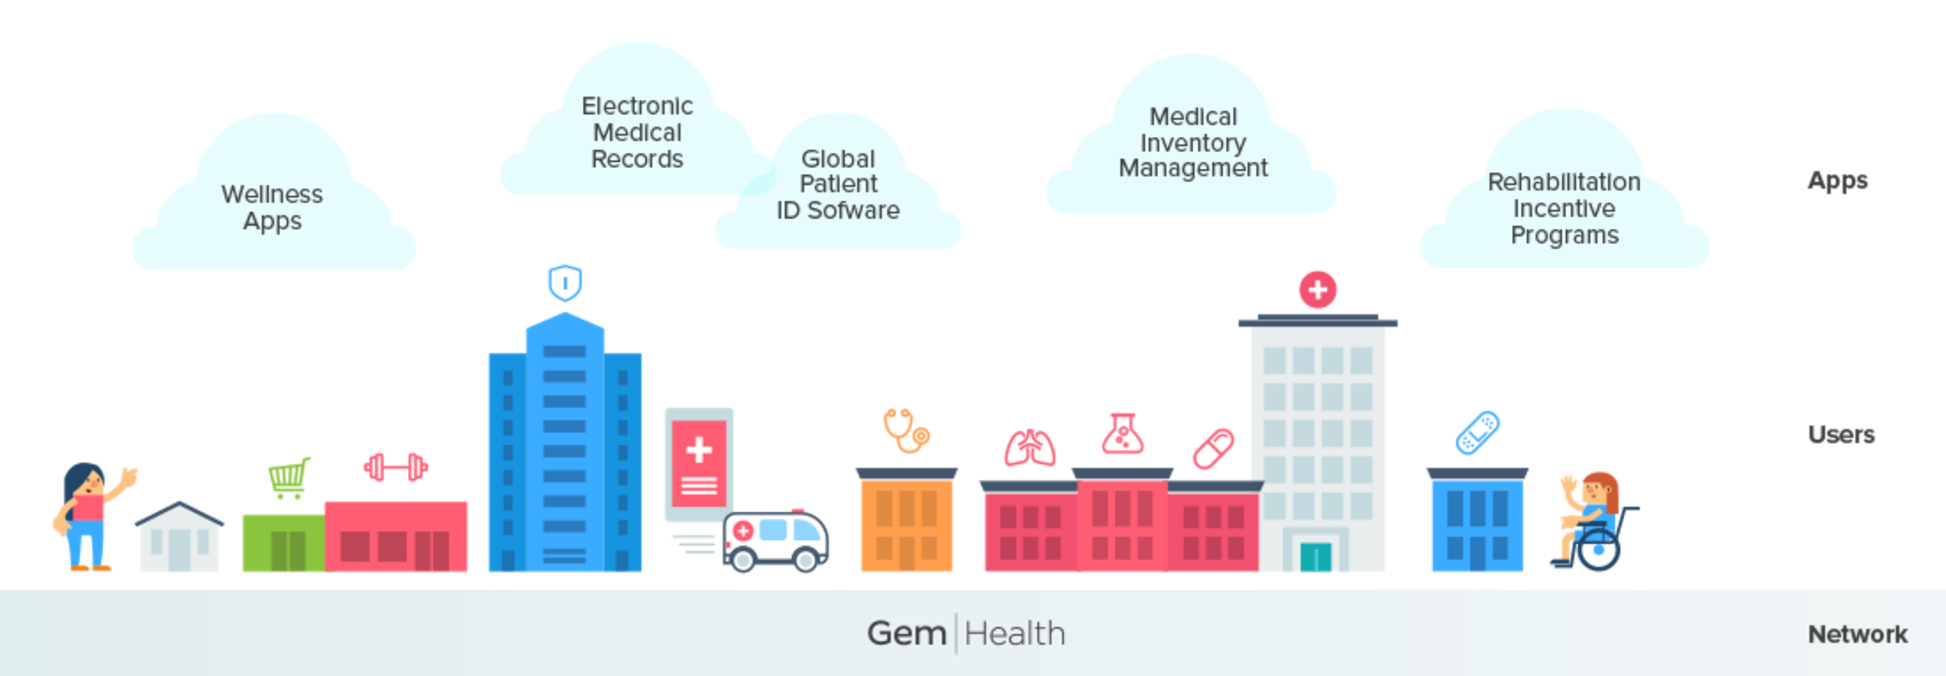 Gem Partners With Philips for Blockchain Healthcare Initiative